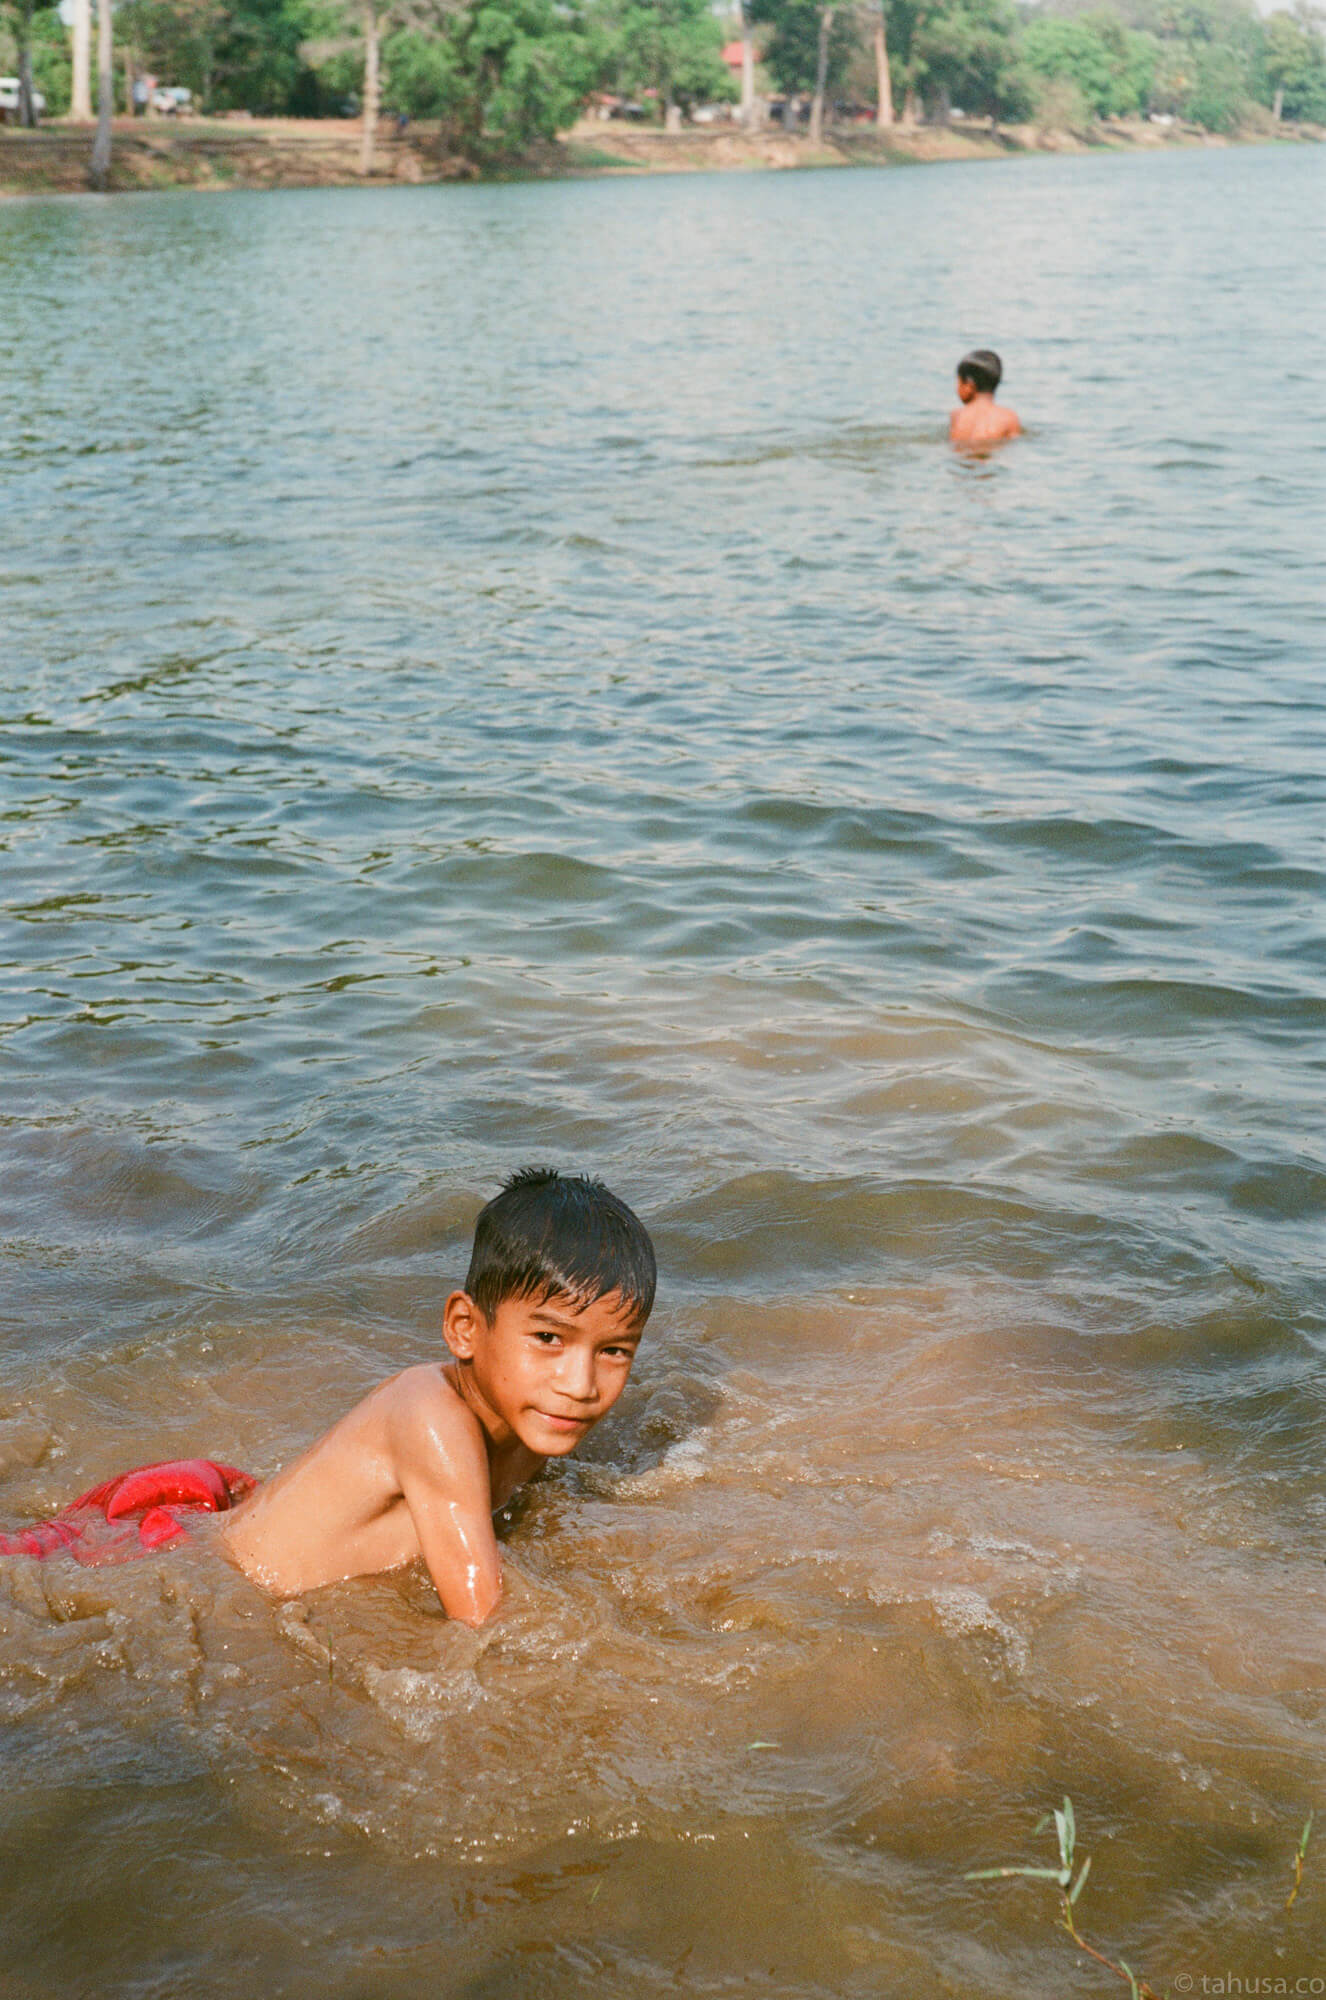 happy-kid-playing-swimming-with-his-friend-cambodia-angkor-siem-reap-south-east-asia-travel-travelling-street-snap-using-leica-m2-summicron-f2-rigid-analog-film-is-fuji-fujifilm-superia-premium-400-iso400